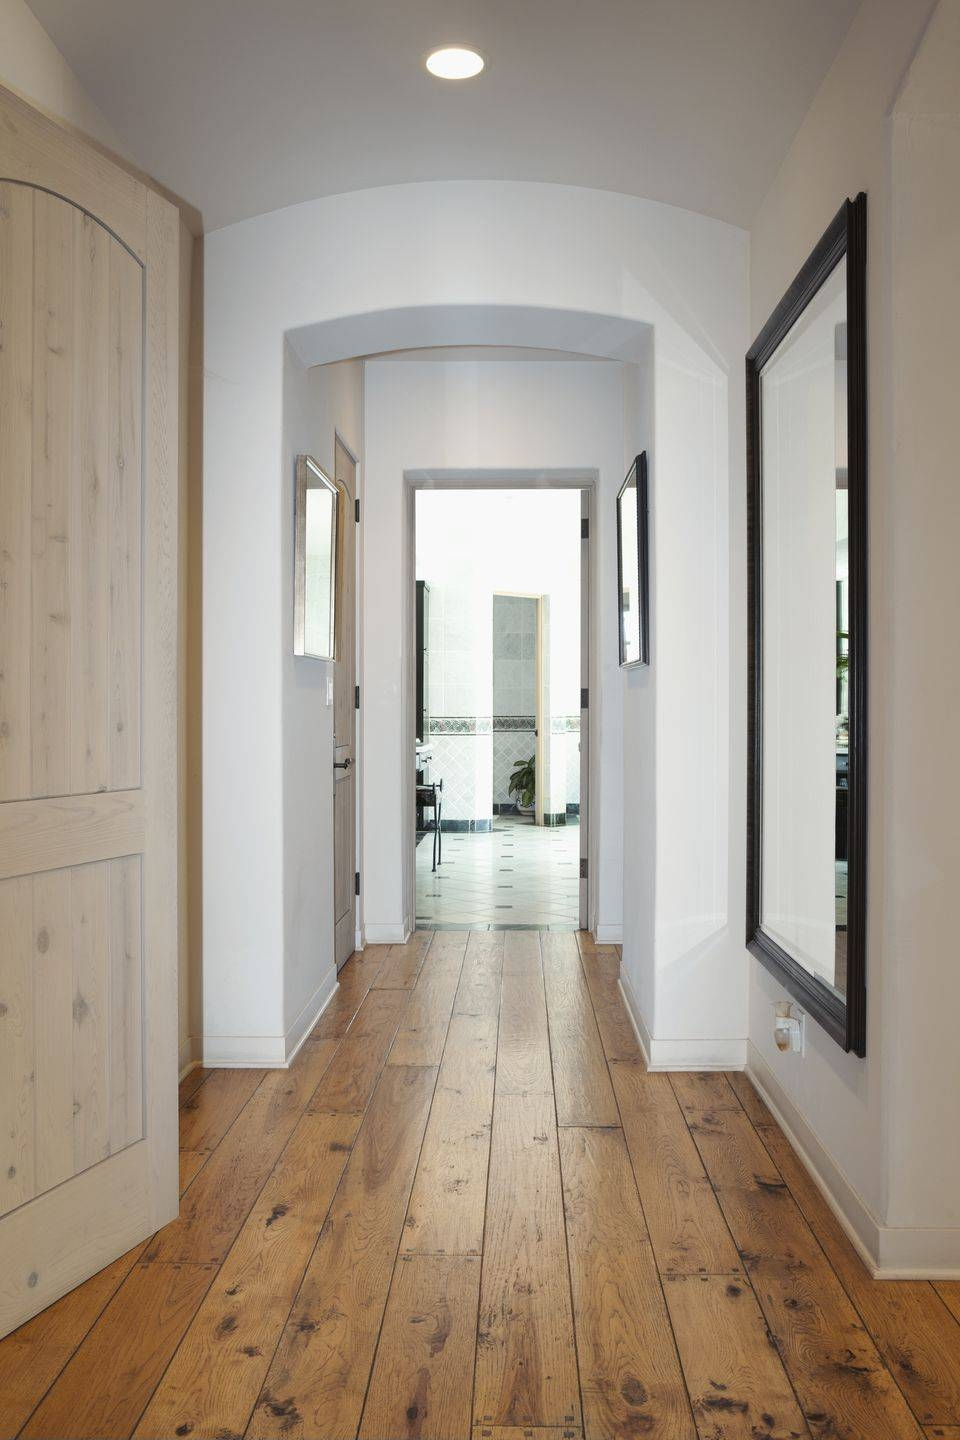 Feng Shui Tips For A Long Hallway In A Home Of Business with regard to Long Mirrors For Hallway (Image 8 of 15)